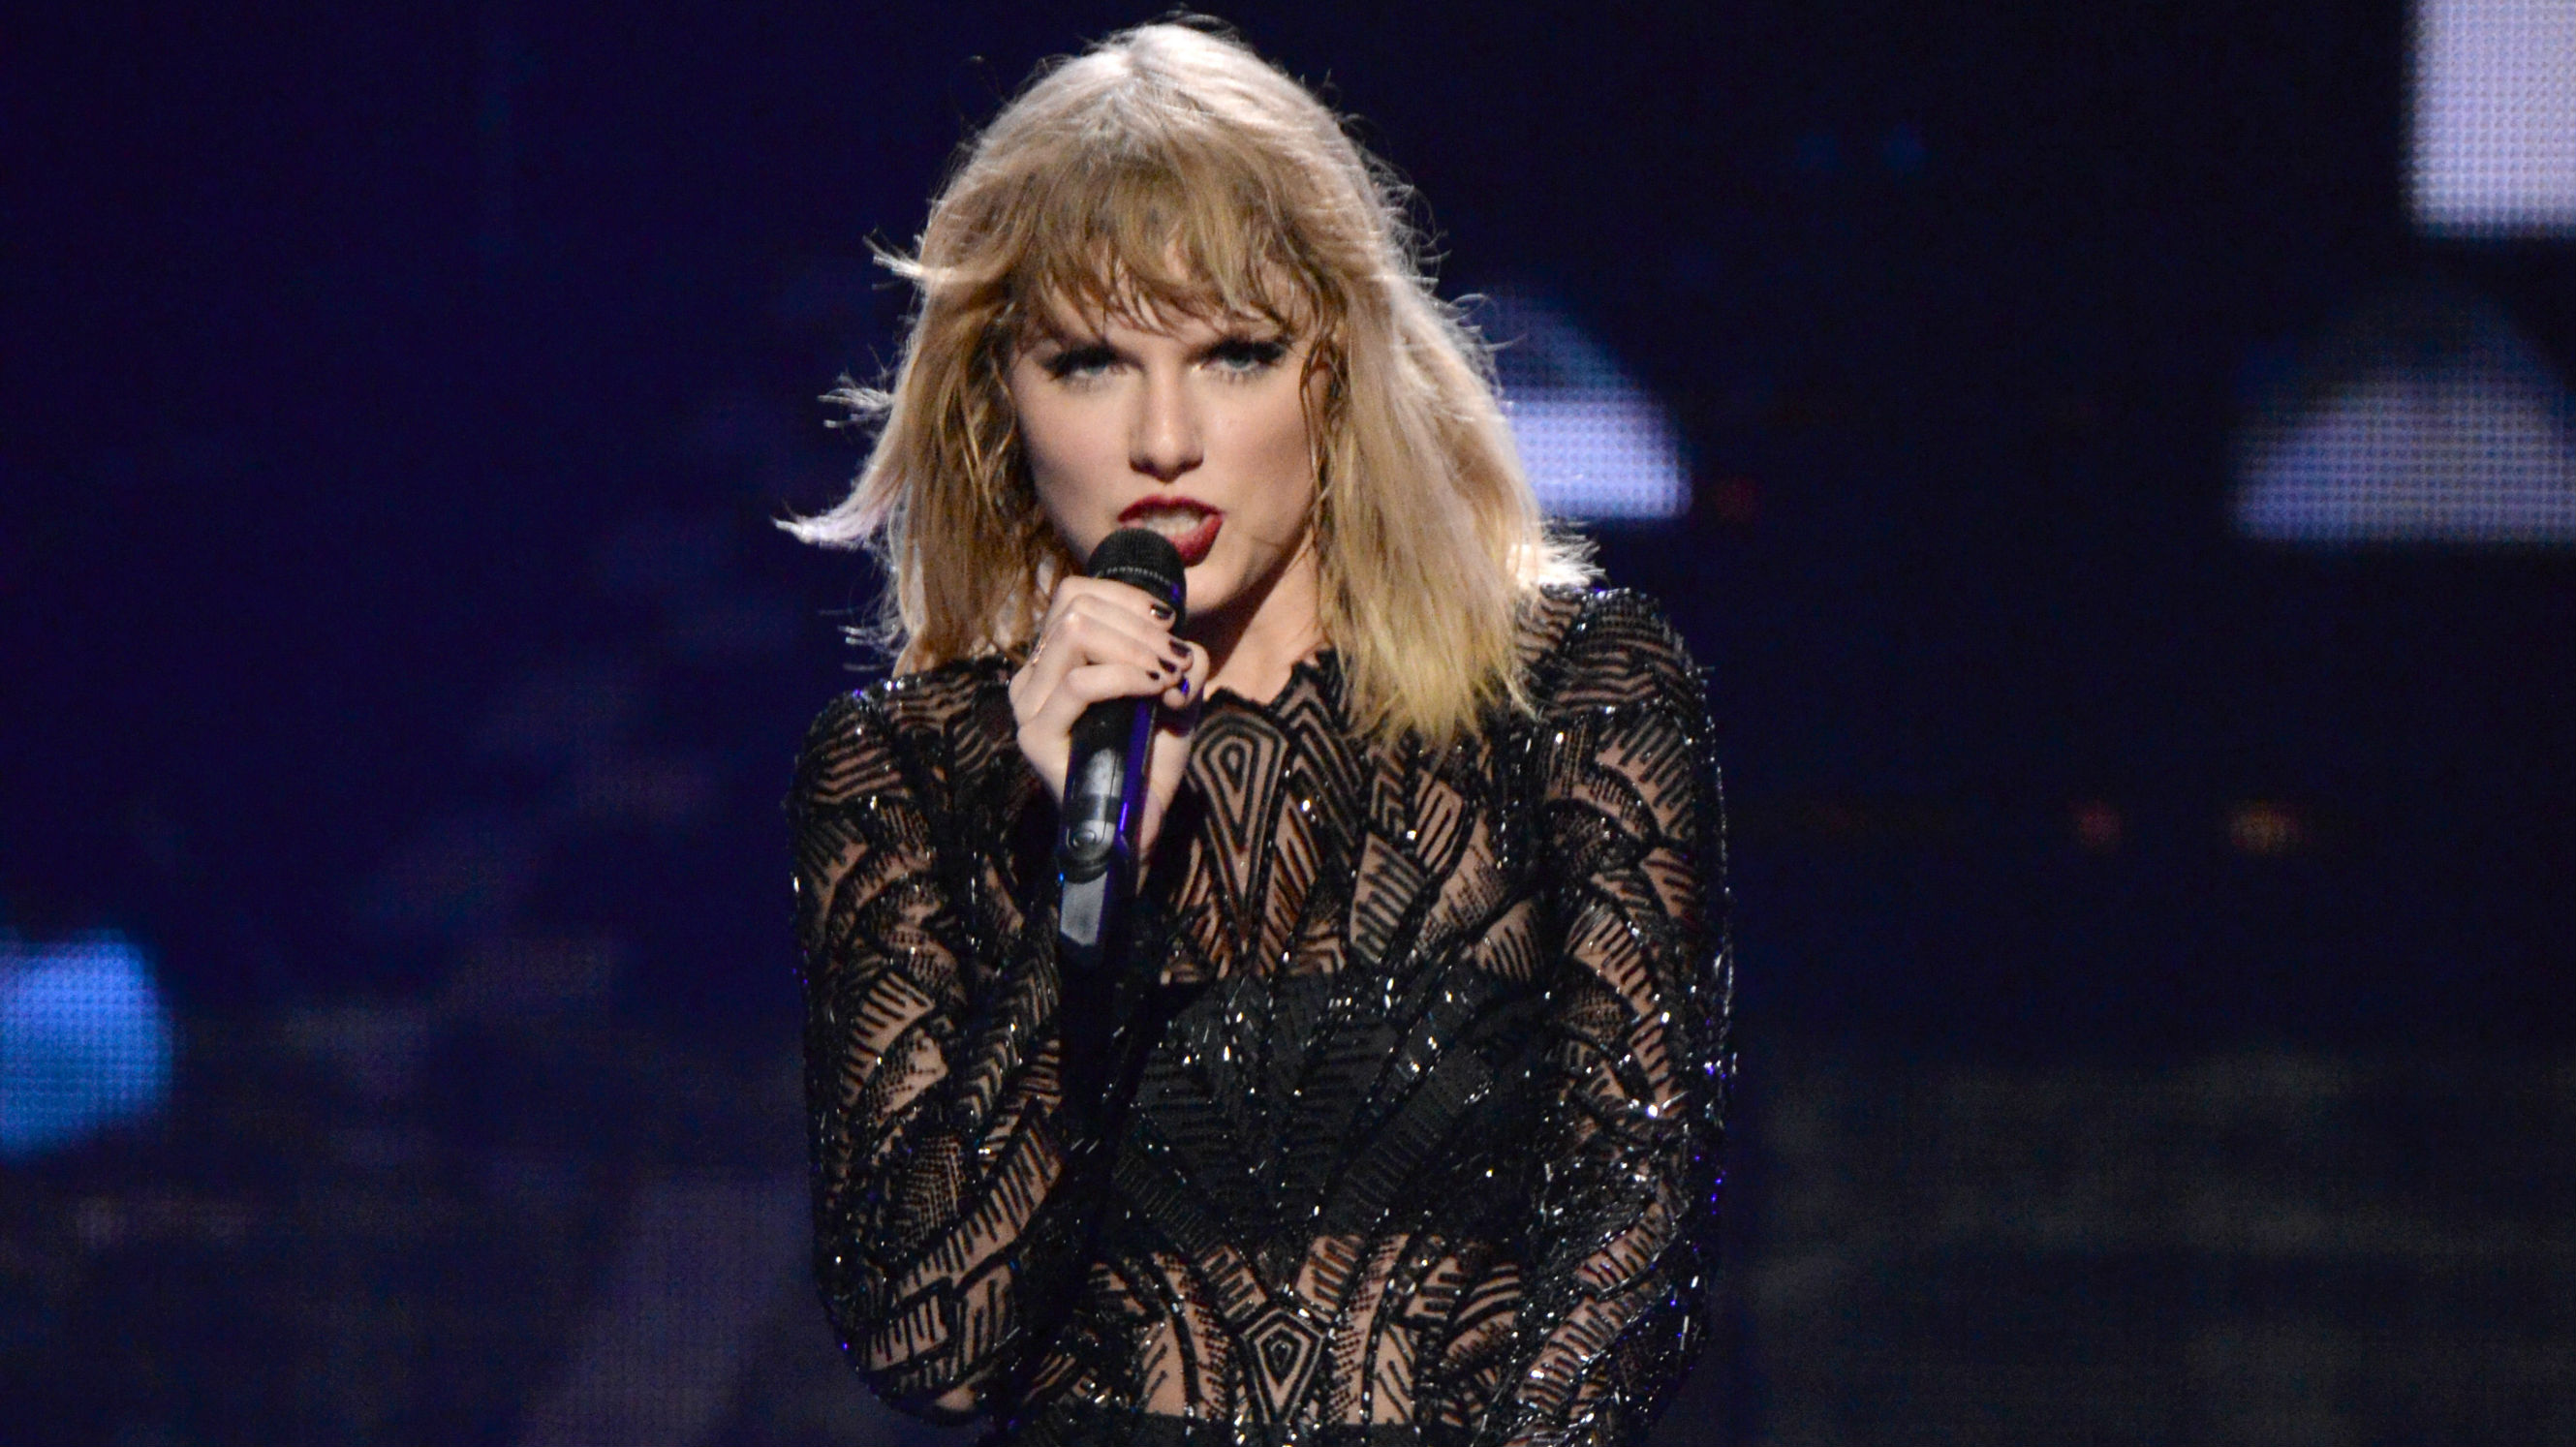 Taylor Swift surprises burn victim in Valley hospital